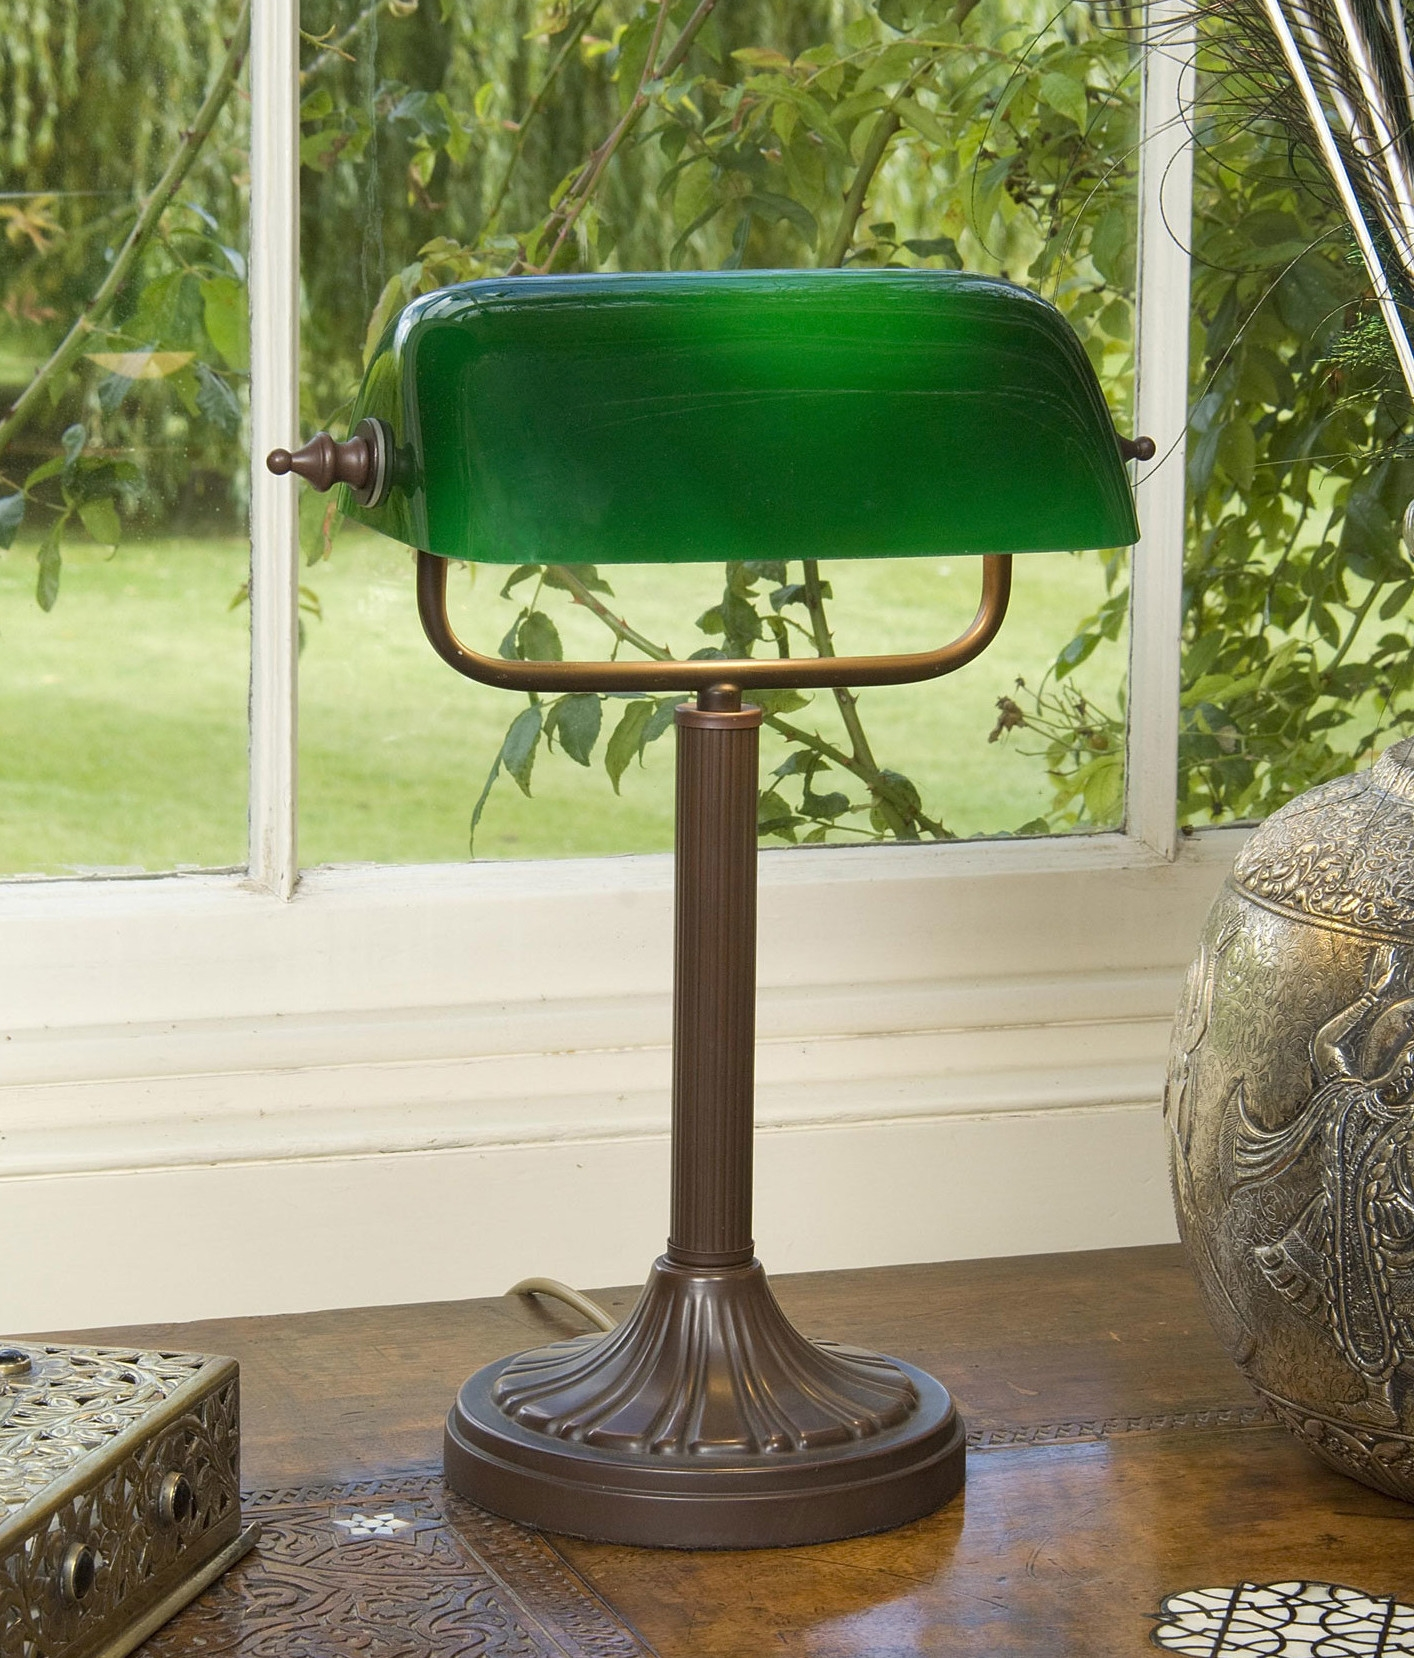 Bankers lamp with green glass shade for 100 watt table lamps uk